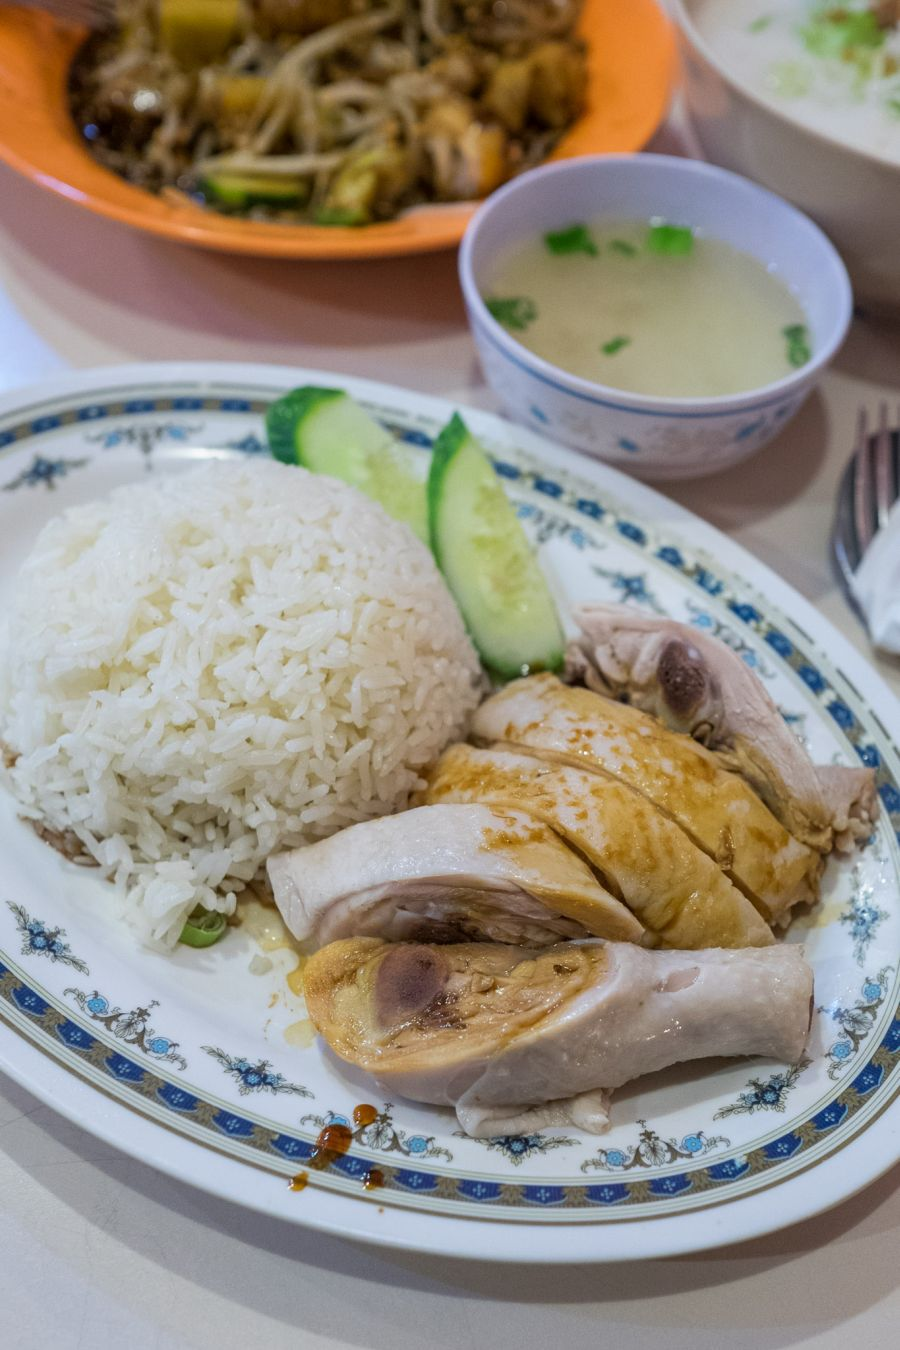 Hainanese chicken rice (AU$7.50) - with chicken, cucumber and soup